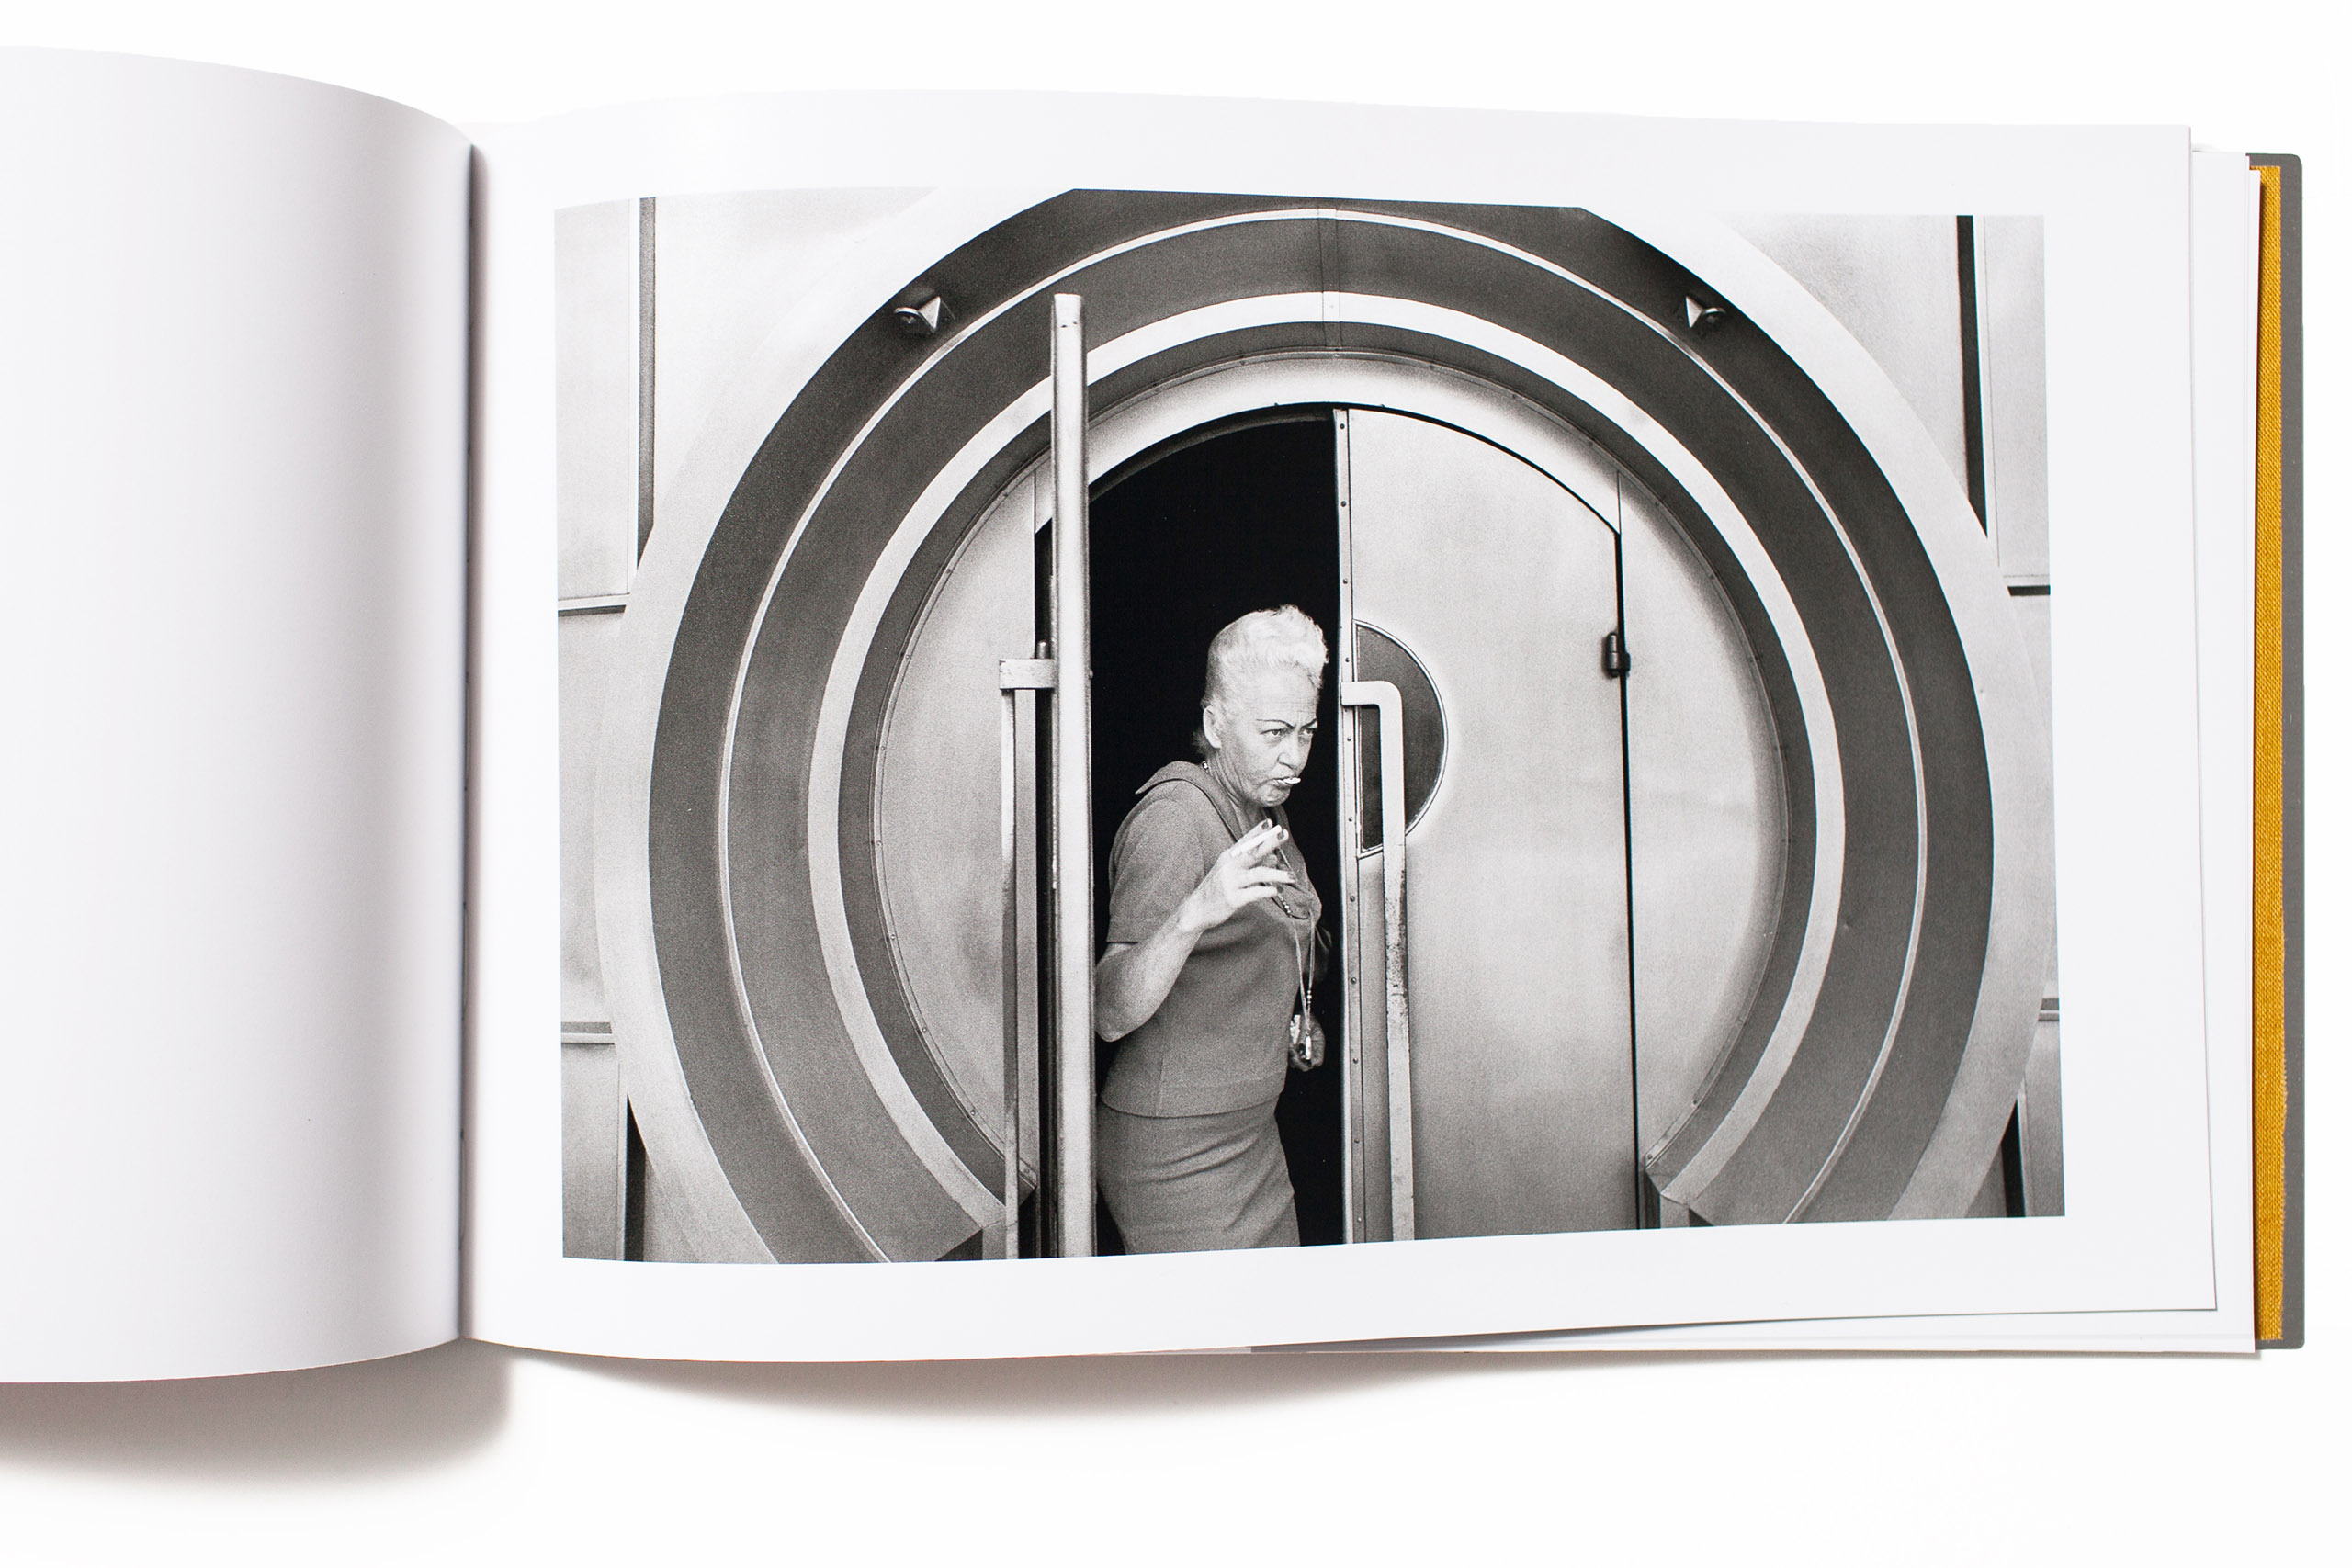 """""""How can a book comprised of twelve images of something so ordinary as people exiting a door in Los Angeles (that looks oddly at first like a bank vault) captivate interest and validate itself as a book? Anthony Hernandez's <i>LA, 1971</i> is a prime example. Is this an early work by the artist inspired and based in conceptualism or simply a string of images that share common elements and form? <i>L.A. 1971</i> is a surprising and beautiful find from The Silas Finch Foundation.""""                                                                      -Jeffery Ladd, photographer, writer and publisher of Errata Editions."""